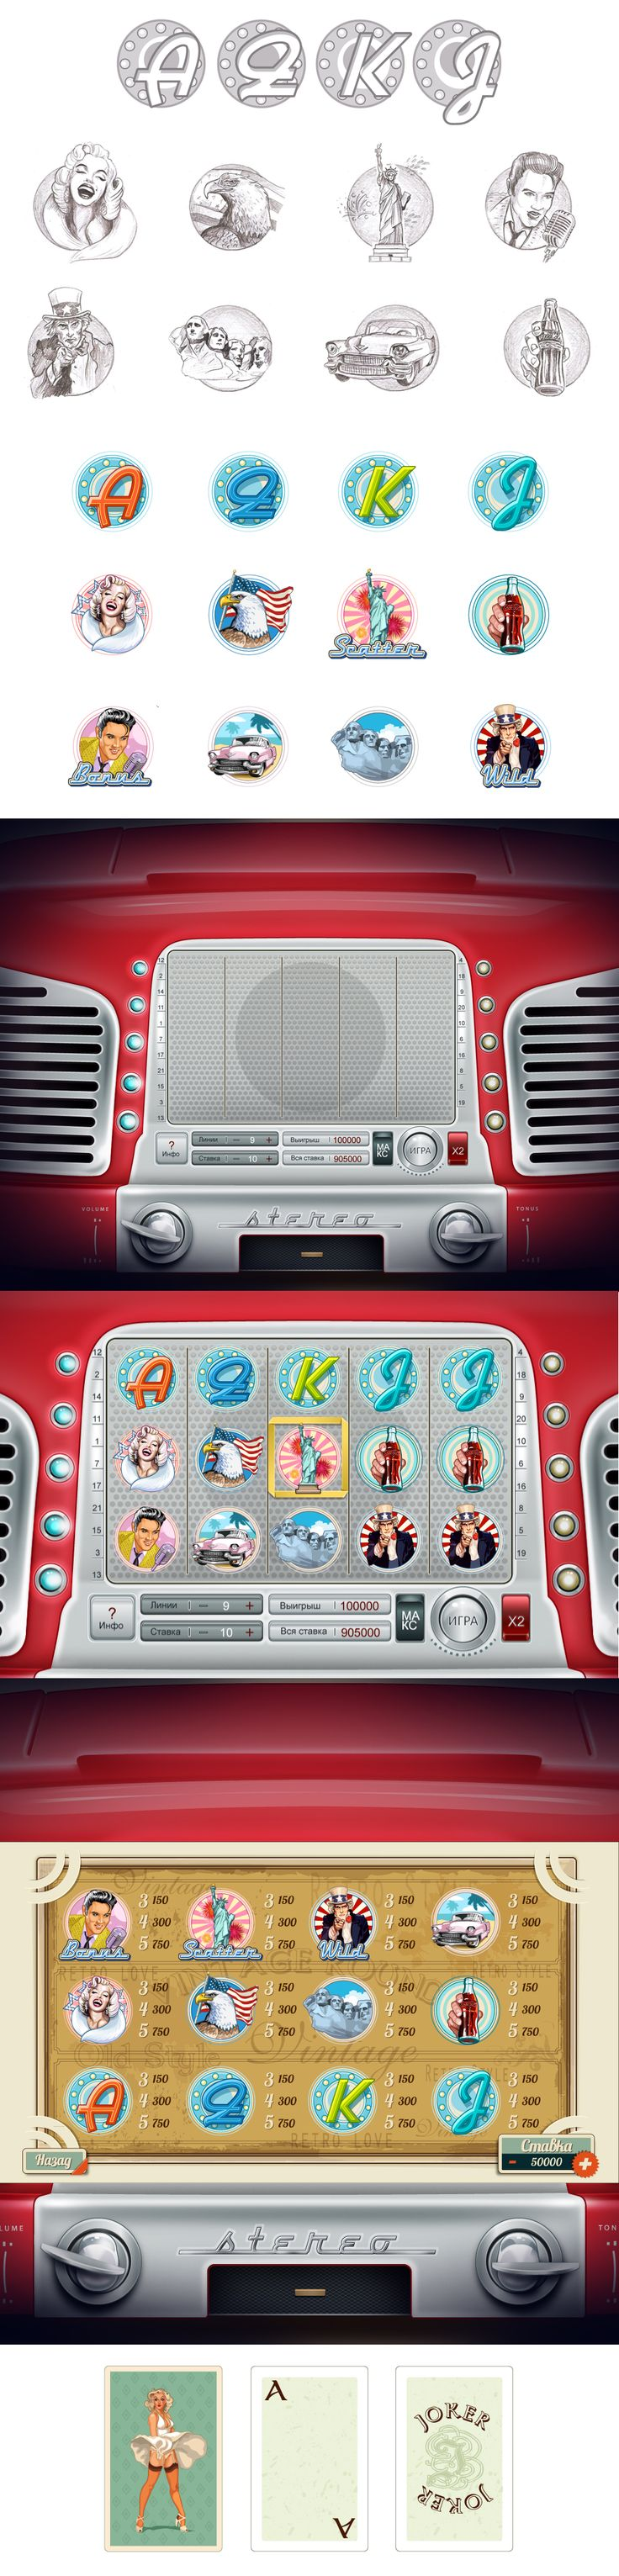 """Development of graphic elements, icons, objects and interface for the new slot machine """"Pin-Up"""". The design of the slot machine will allow you to plunge into the era of the 70s: in the days of jazz, pancakes with syrup and Elvis. Enjoy the game !! http://slotopaint.com/"""